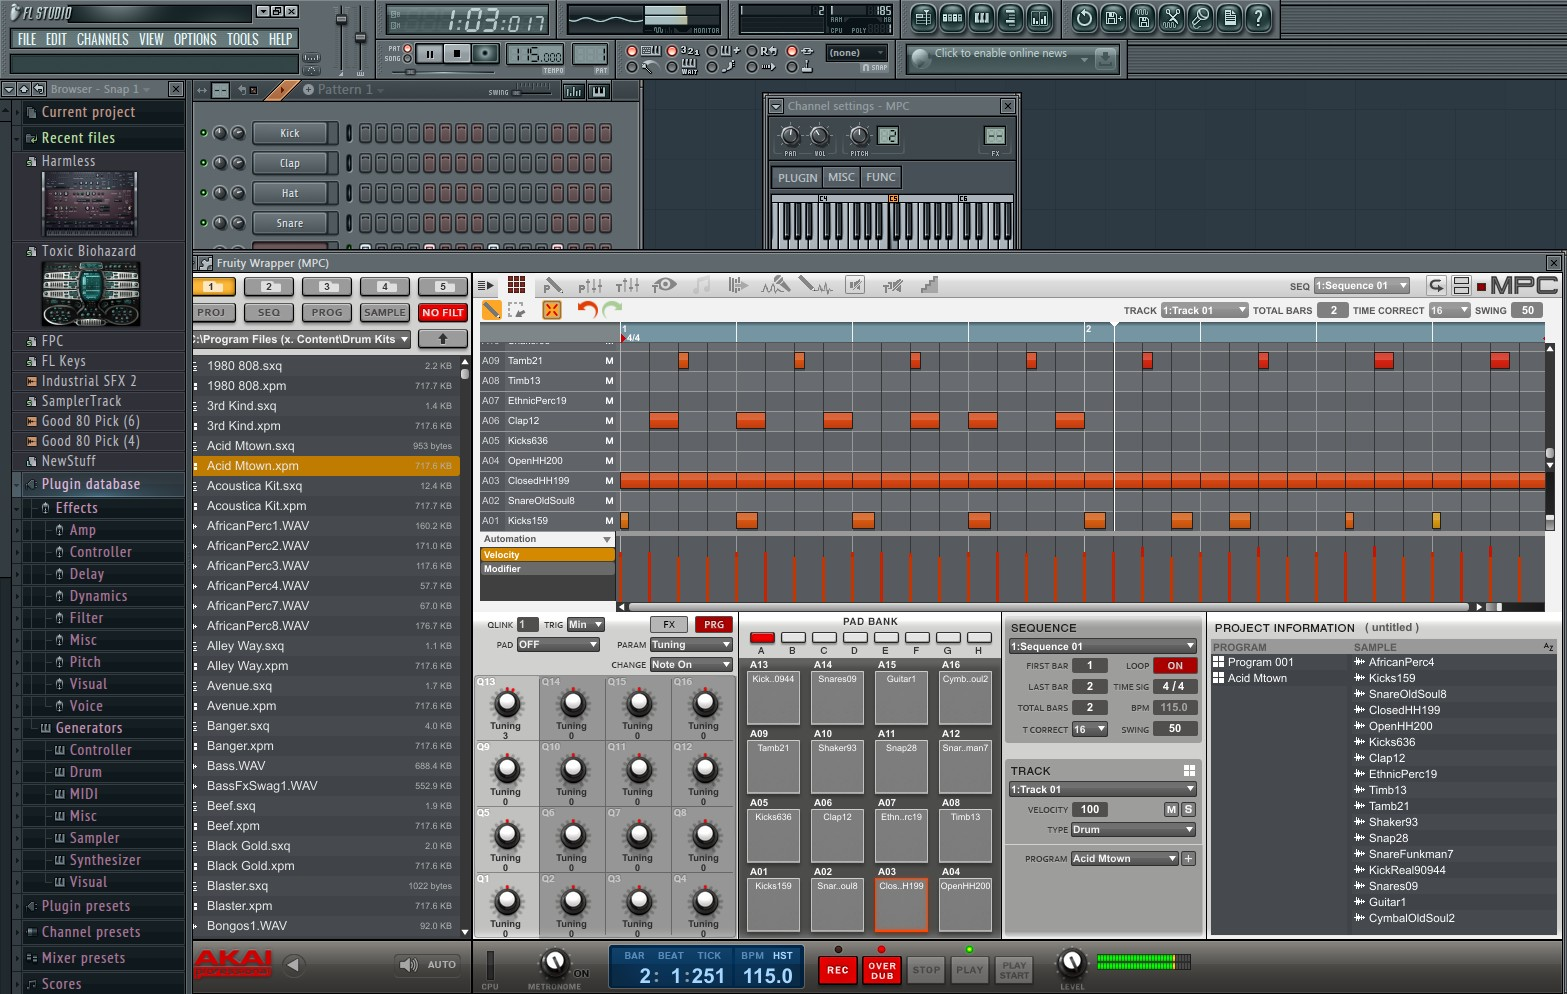 fl studio how to turn off loop points